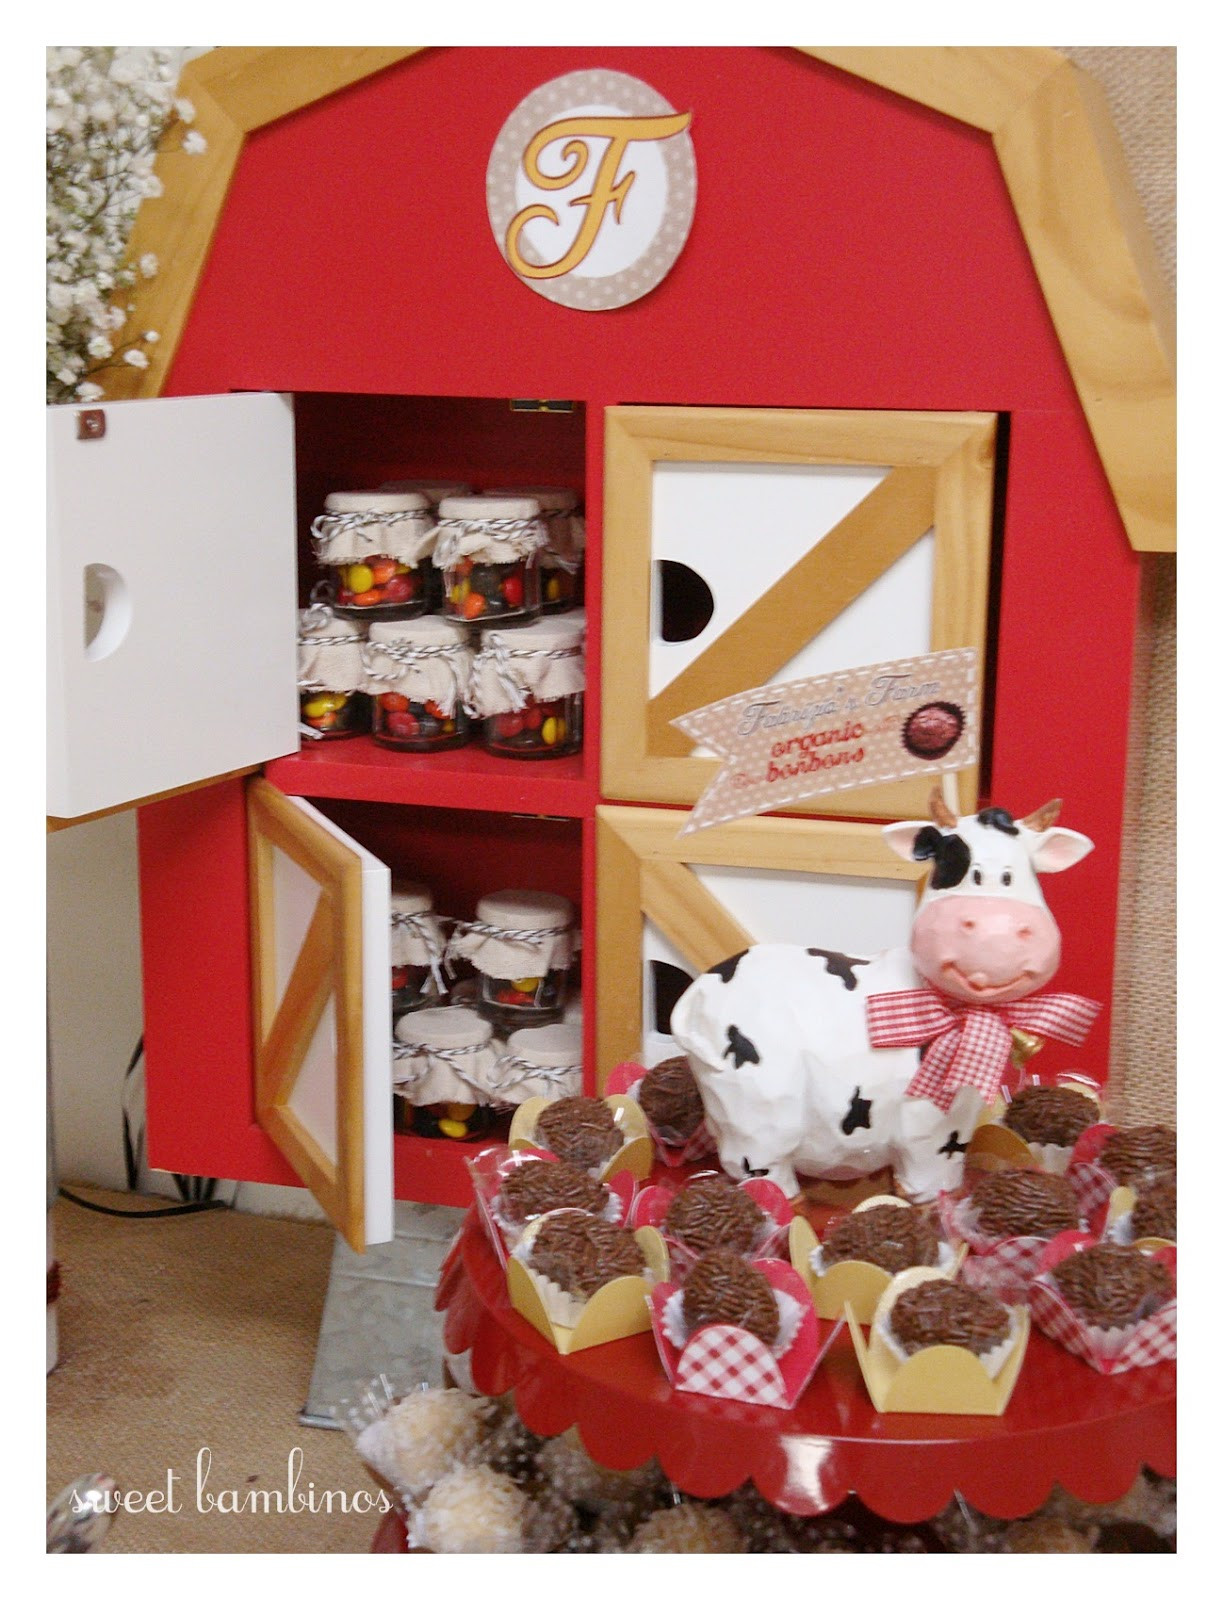 Best ideas about Barn Birthday Party . Save or Pin sweet bambinos Real Party Fabrizio s Barnyard Now.